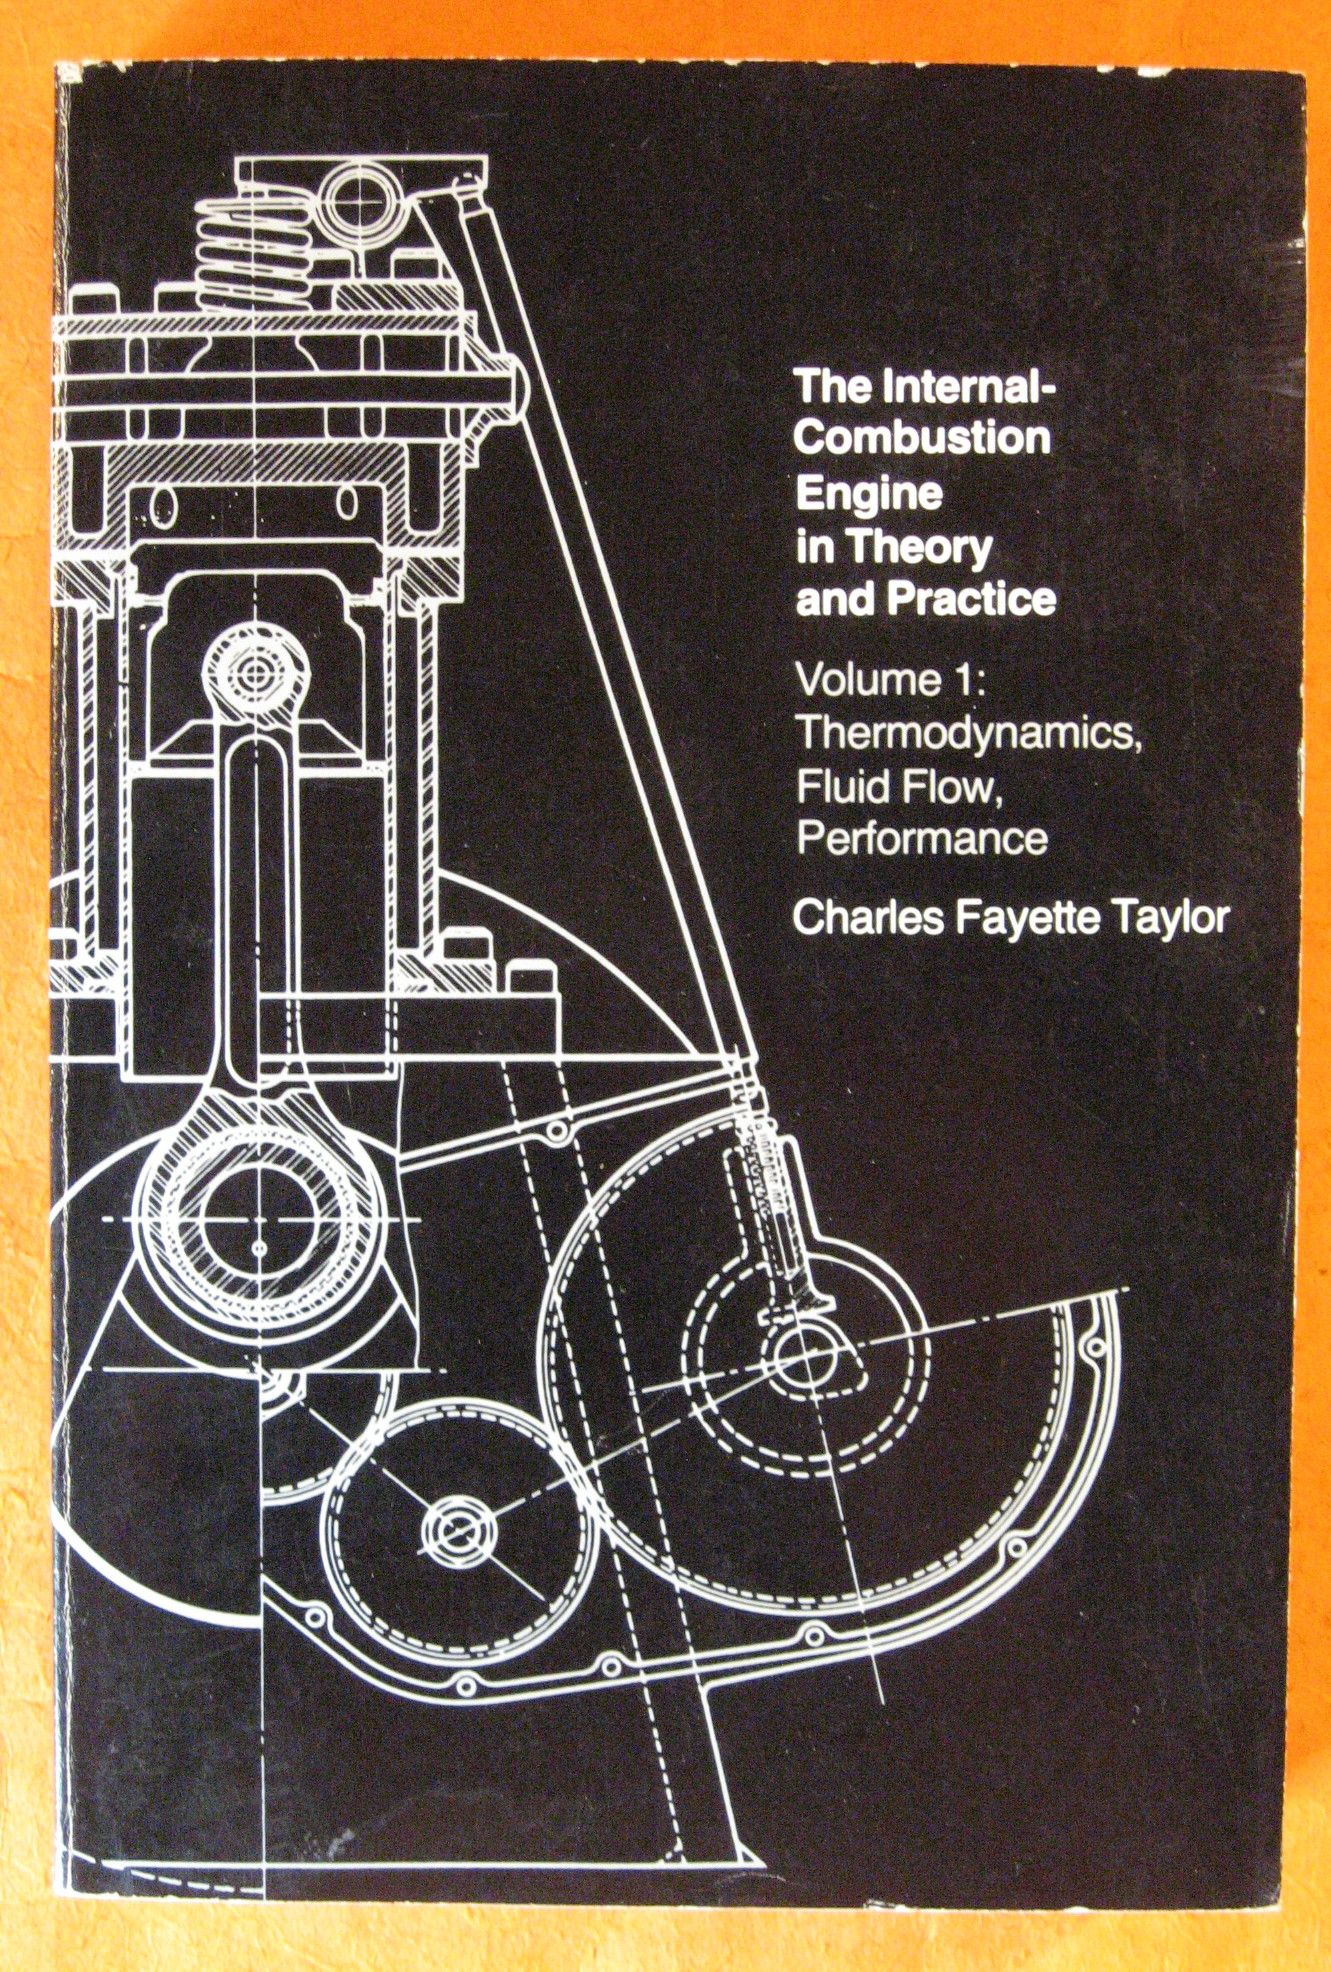 The Internal Combustion Engine In Theory And Practice Volume I Illustrated Diagram Of A Basic Thermodynamics